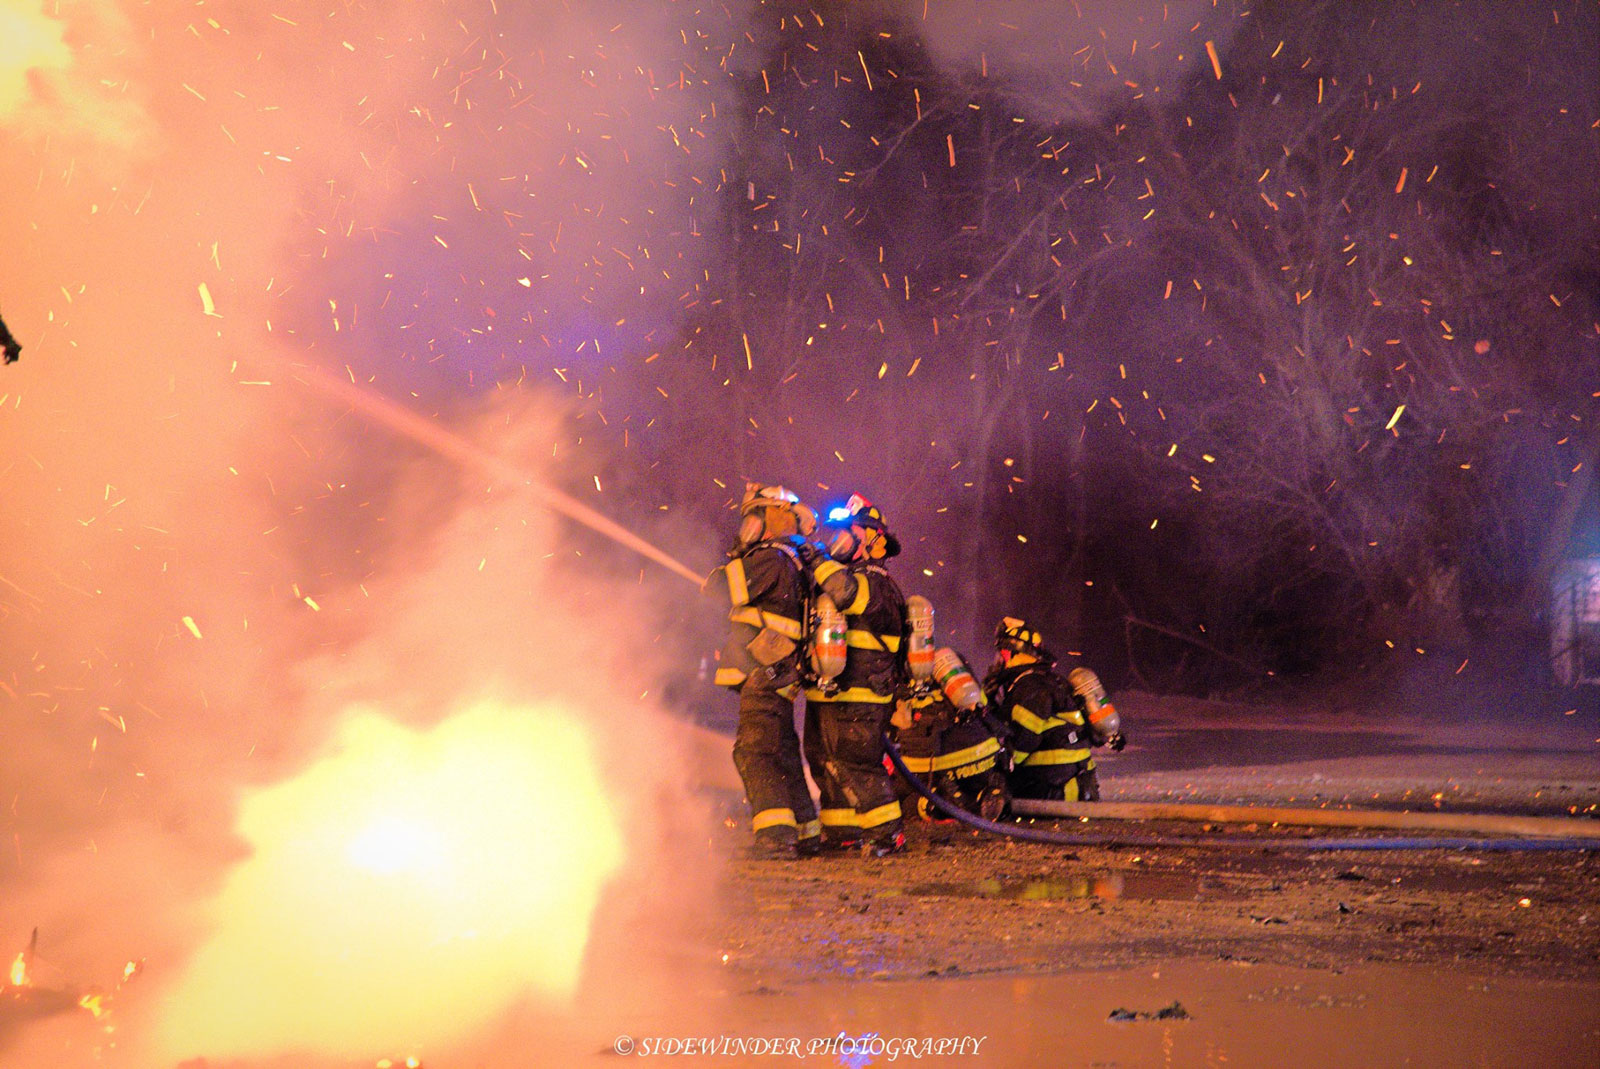 Several firefighters, surrounded by sparks, coordinate an exterior line